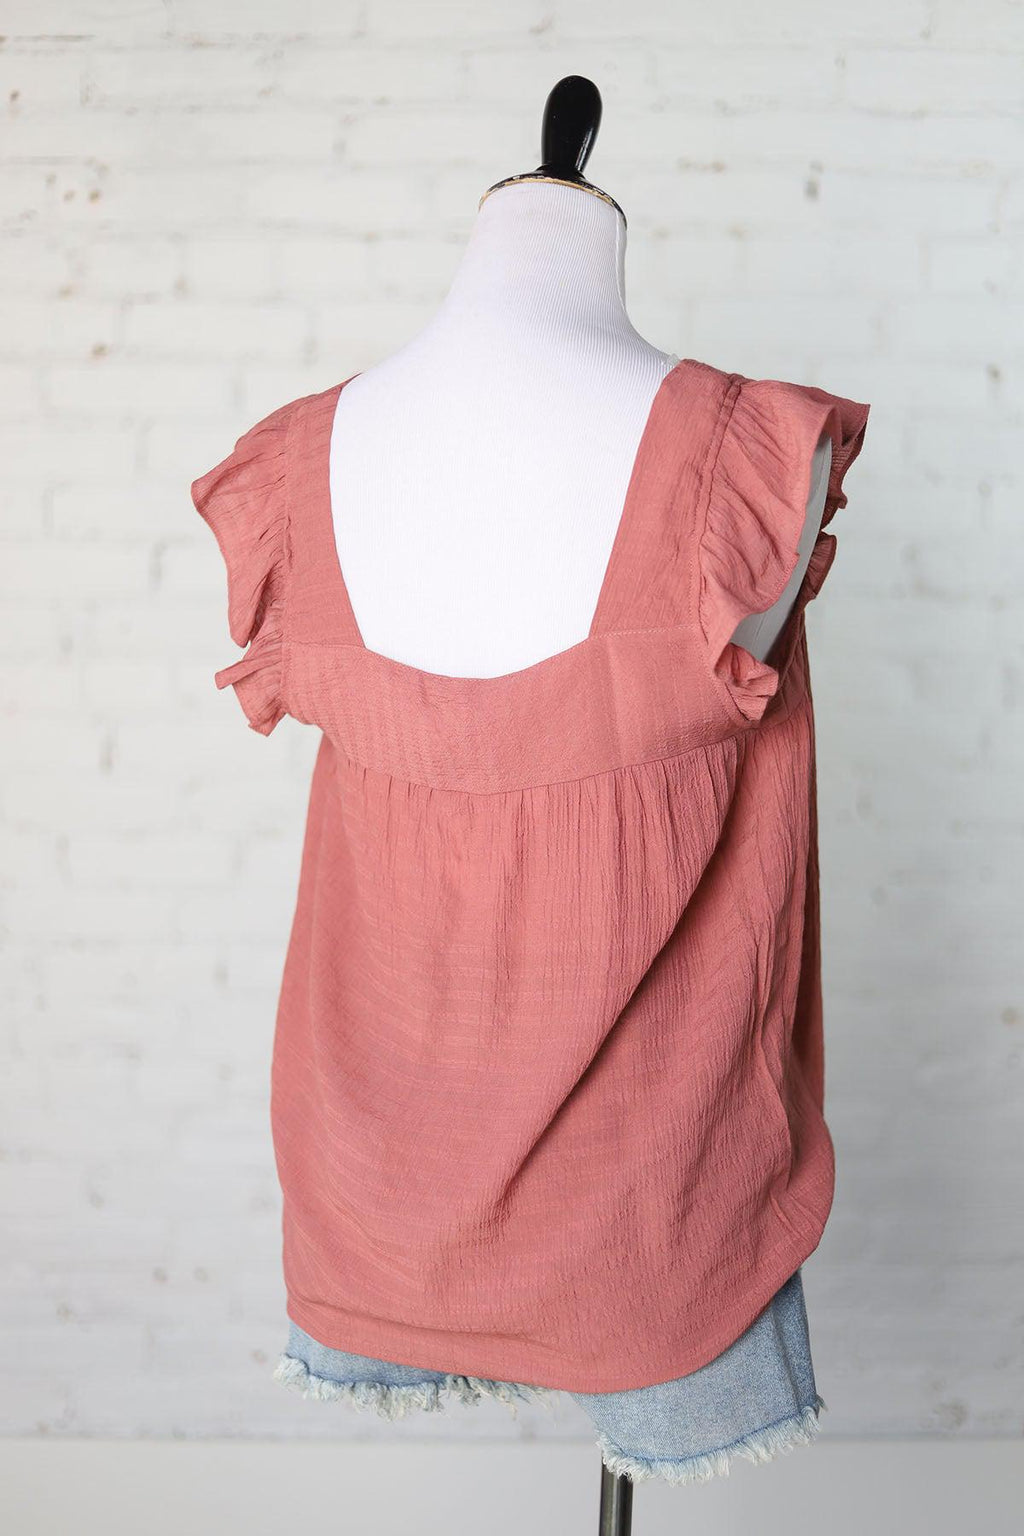 Elwood Women's Sweatpants